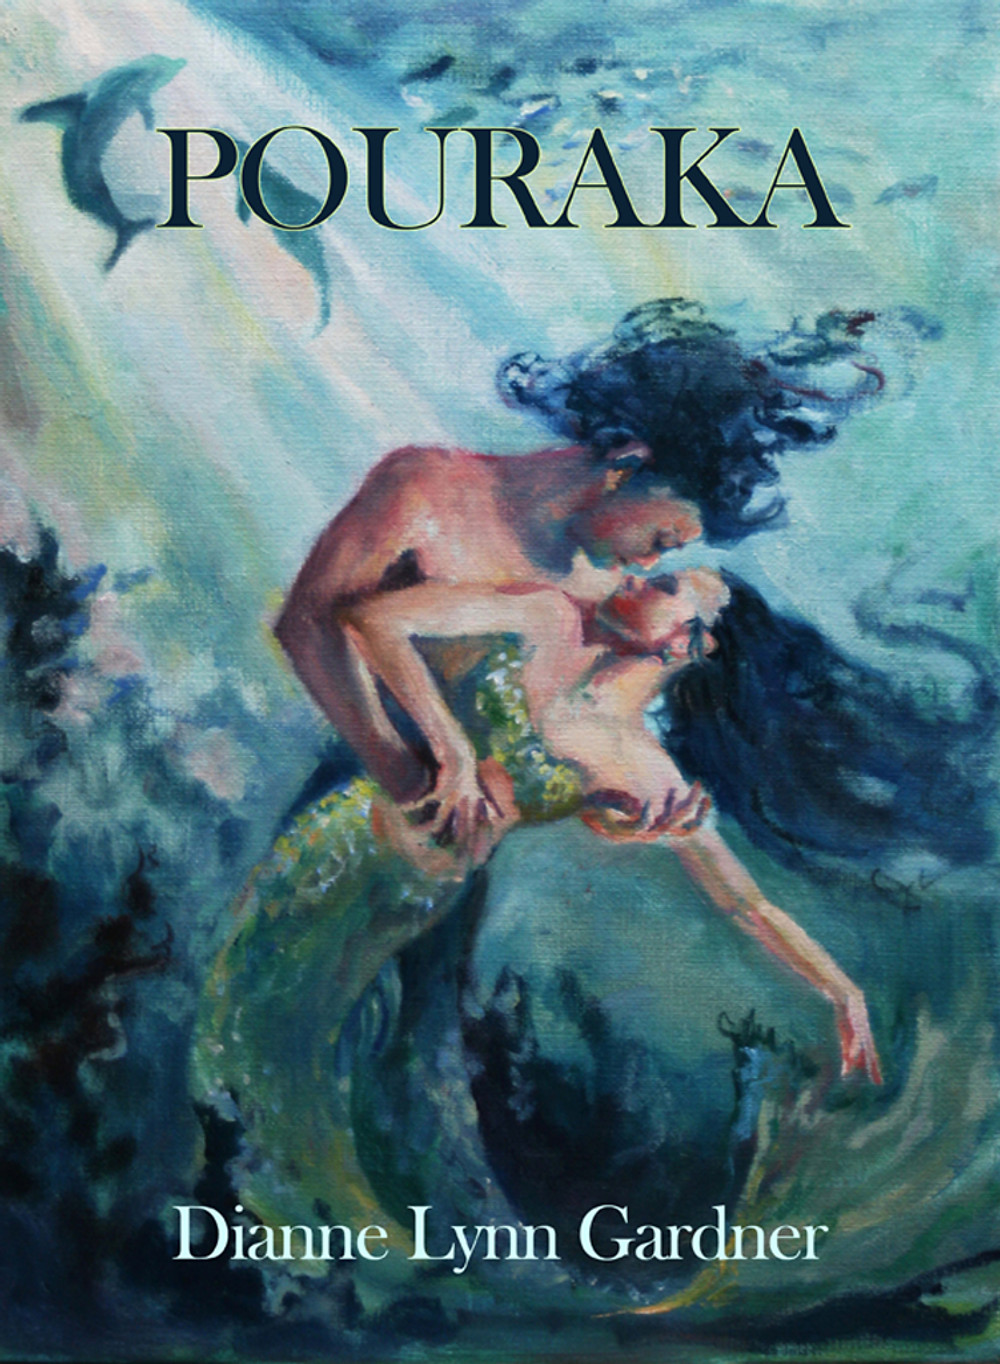 The story of mermaids, dolphins and their struggle to co-exsist with mankind.